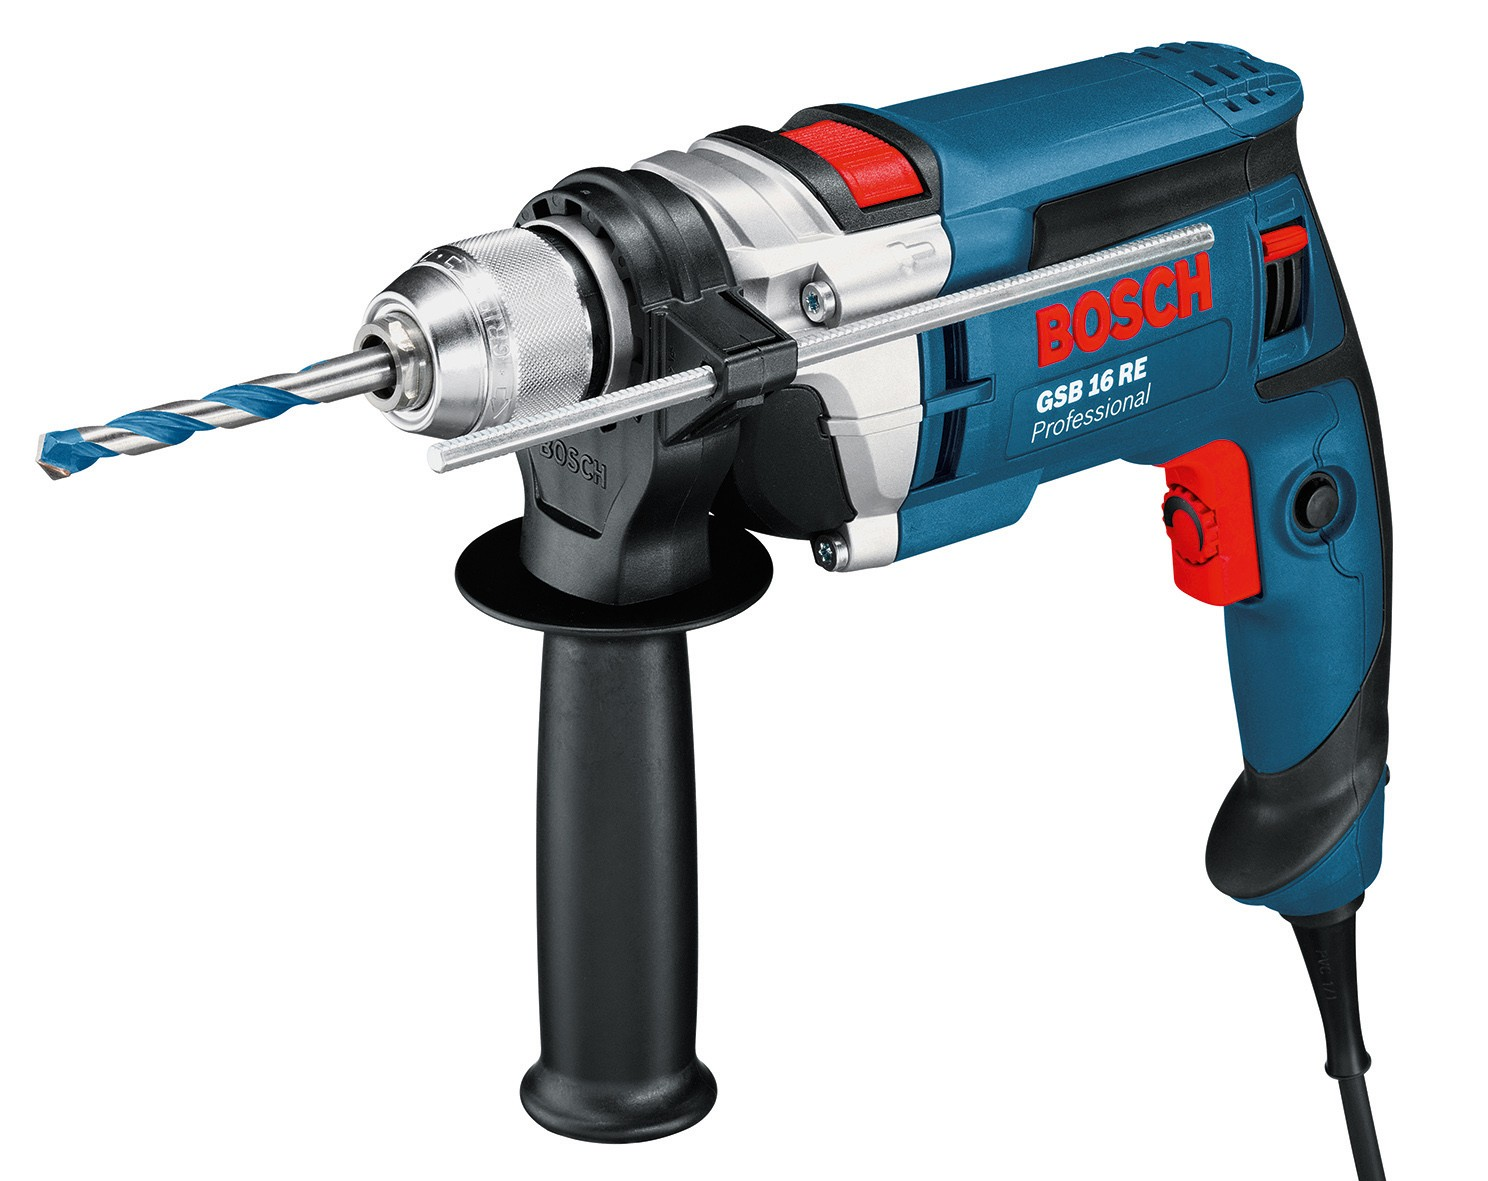 Bosch Gsb 16 Re 240v Percussion Drill 13mm Keyless Chuck